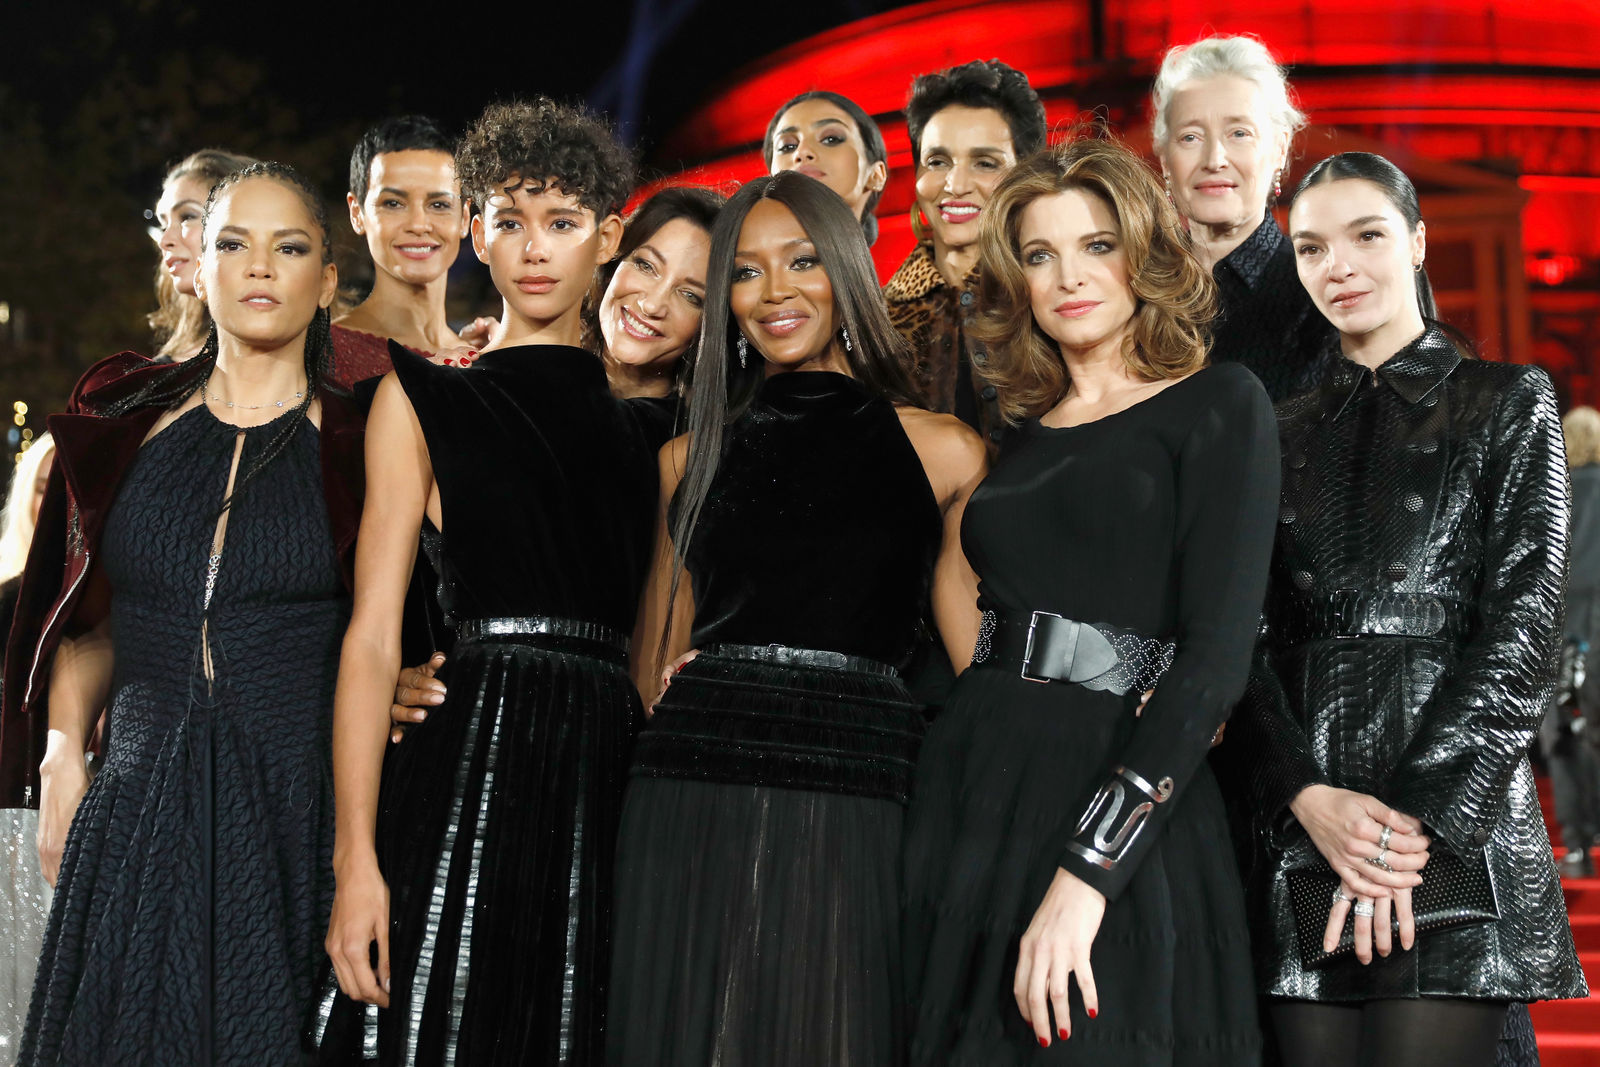 Collective slay: (rear, left to right) Linda Spierings, Nadège du Bospertus, Imaan Hammam, Farida Khelfa, Marie-Sophie Wilson, (front, left to right) The Glow Up's Veronica Webb, Dilone, Marpessa Hennink, Naomi Campbell, Stephanie Seymour and Mariacarla Boscono attend the British Fashion Awards 2017 at Royal Albert Hall on Dec. 4, 2017, in London. (Tristan Fewings/BFC/Getty Images for BFC)